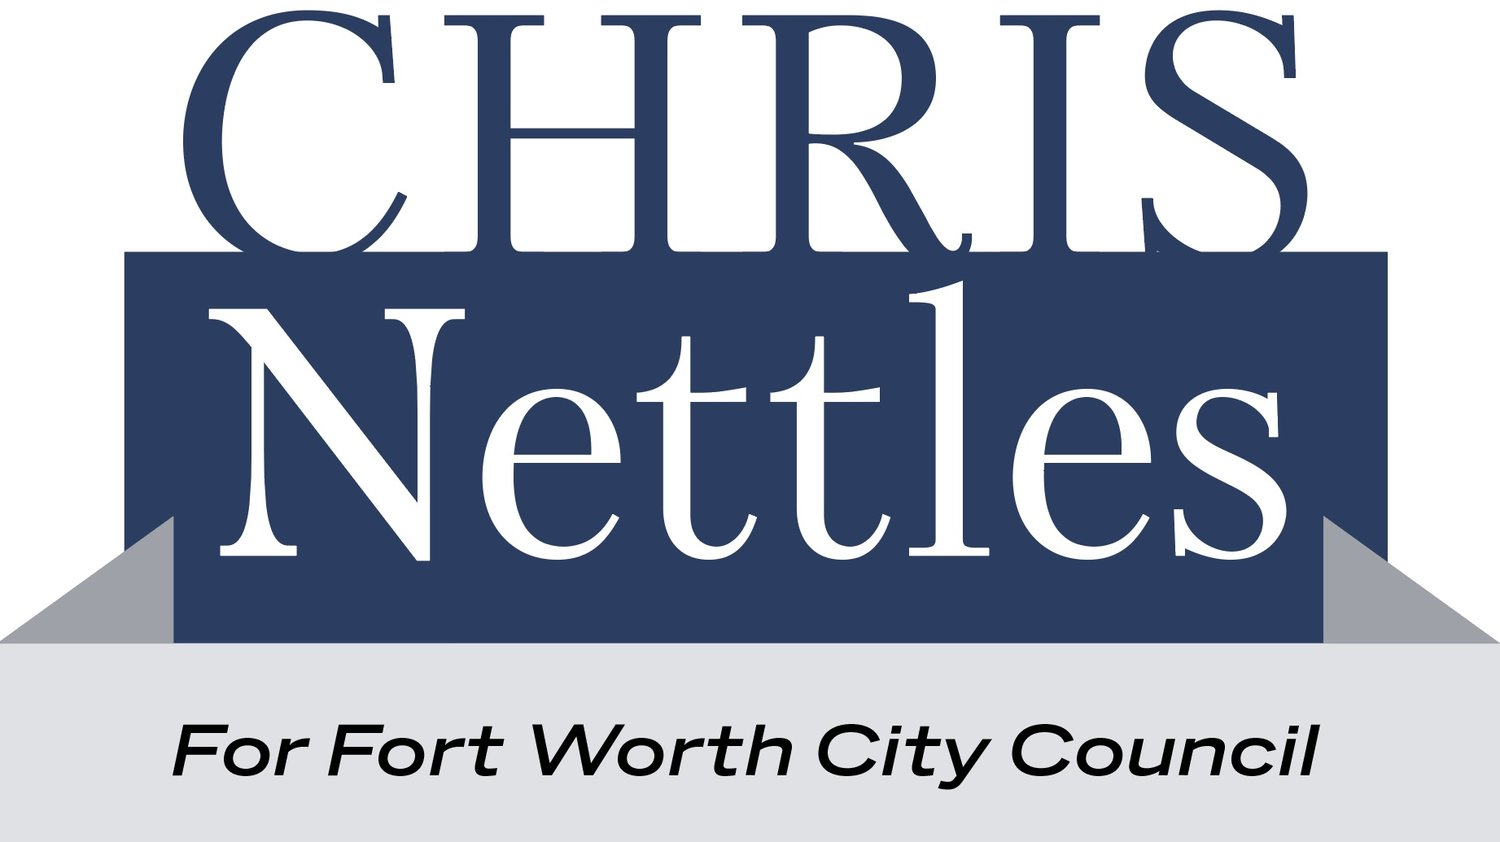 Chris Nettles for City Council